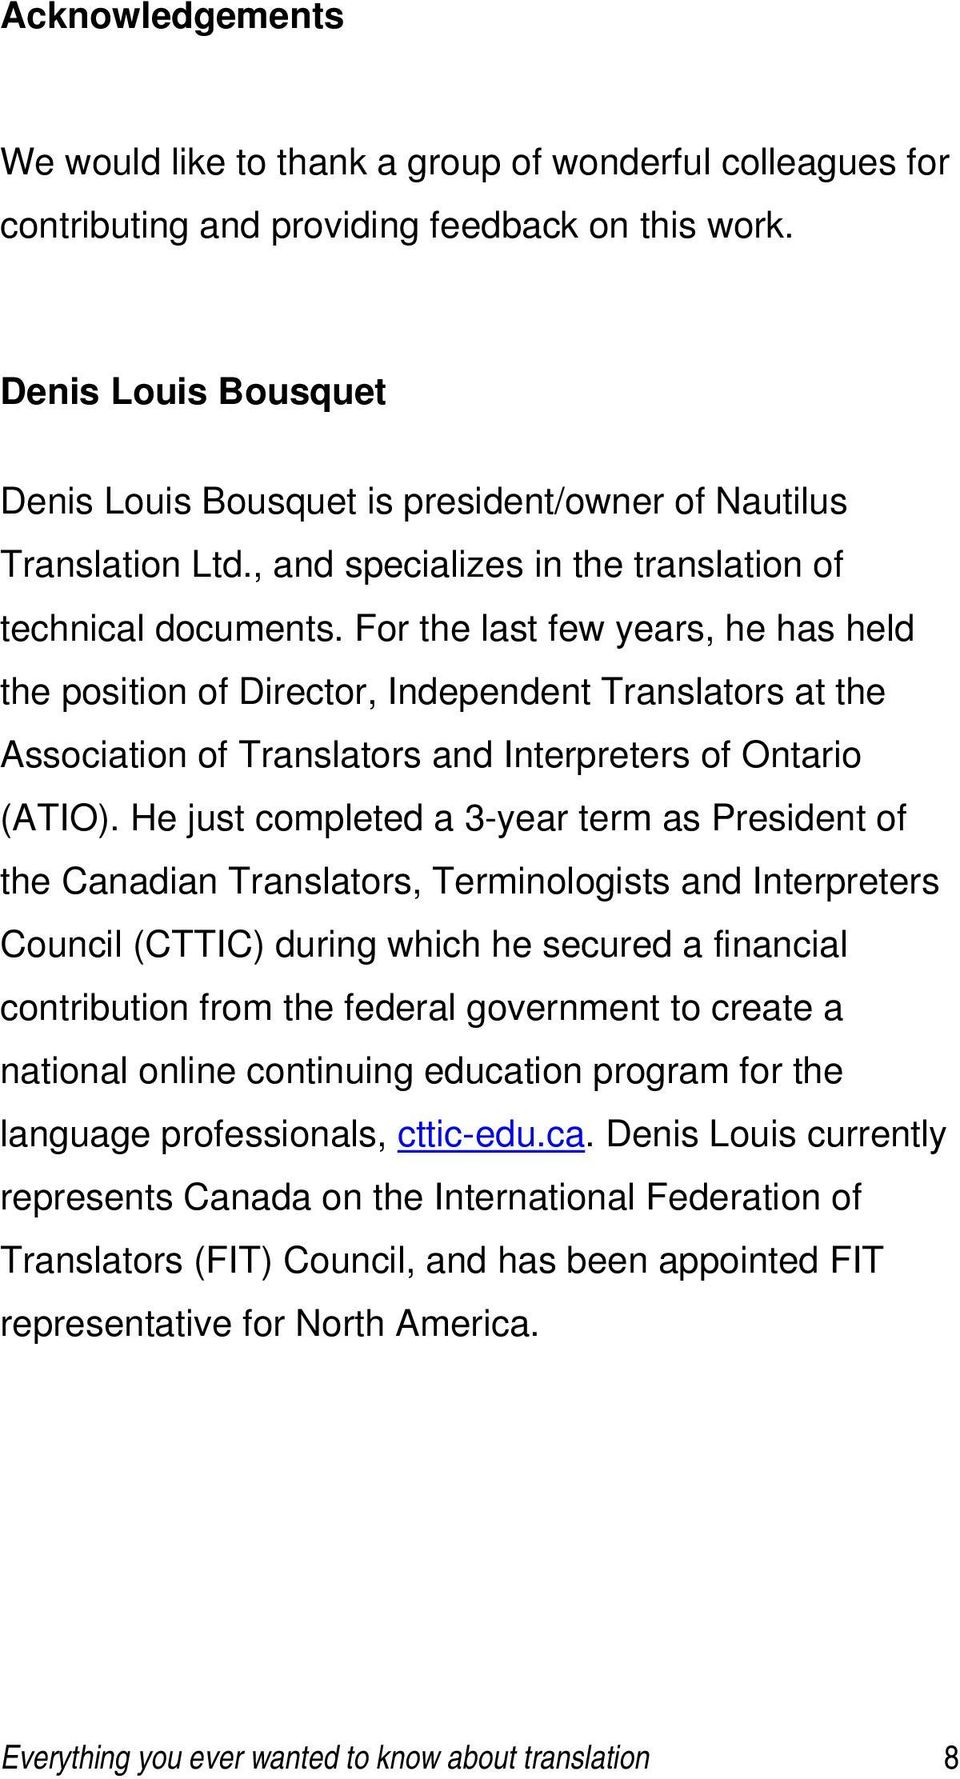 For the last few years, he has held the position of Director, Independent Translators at the Association of Translators and Interpreters of Ontario (ATIO).